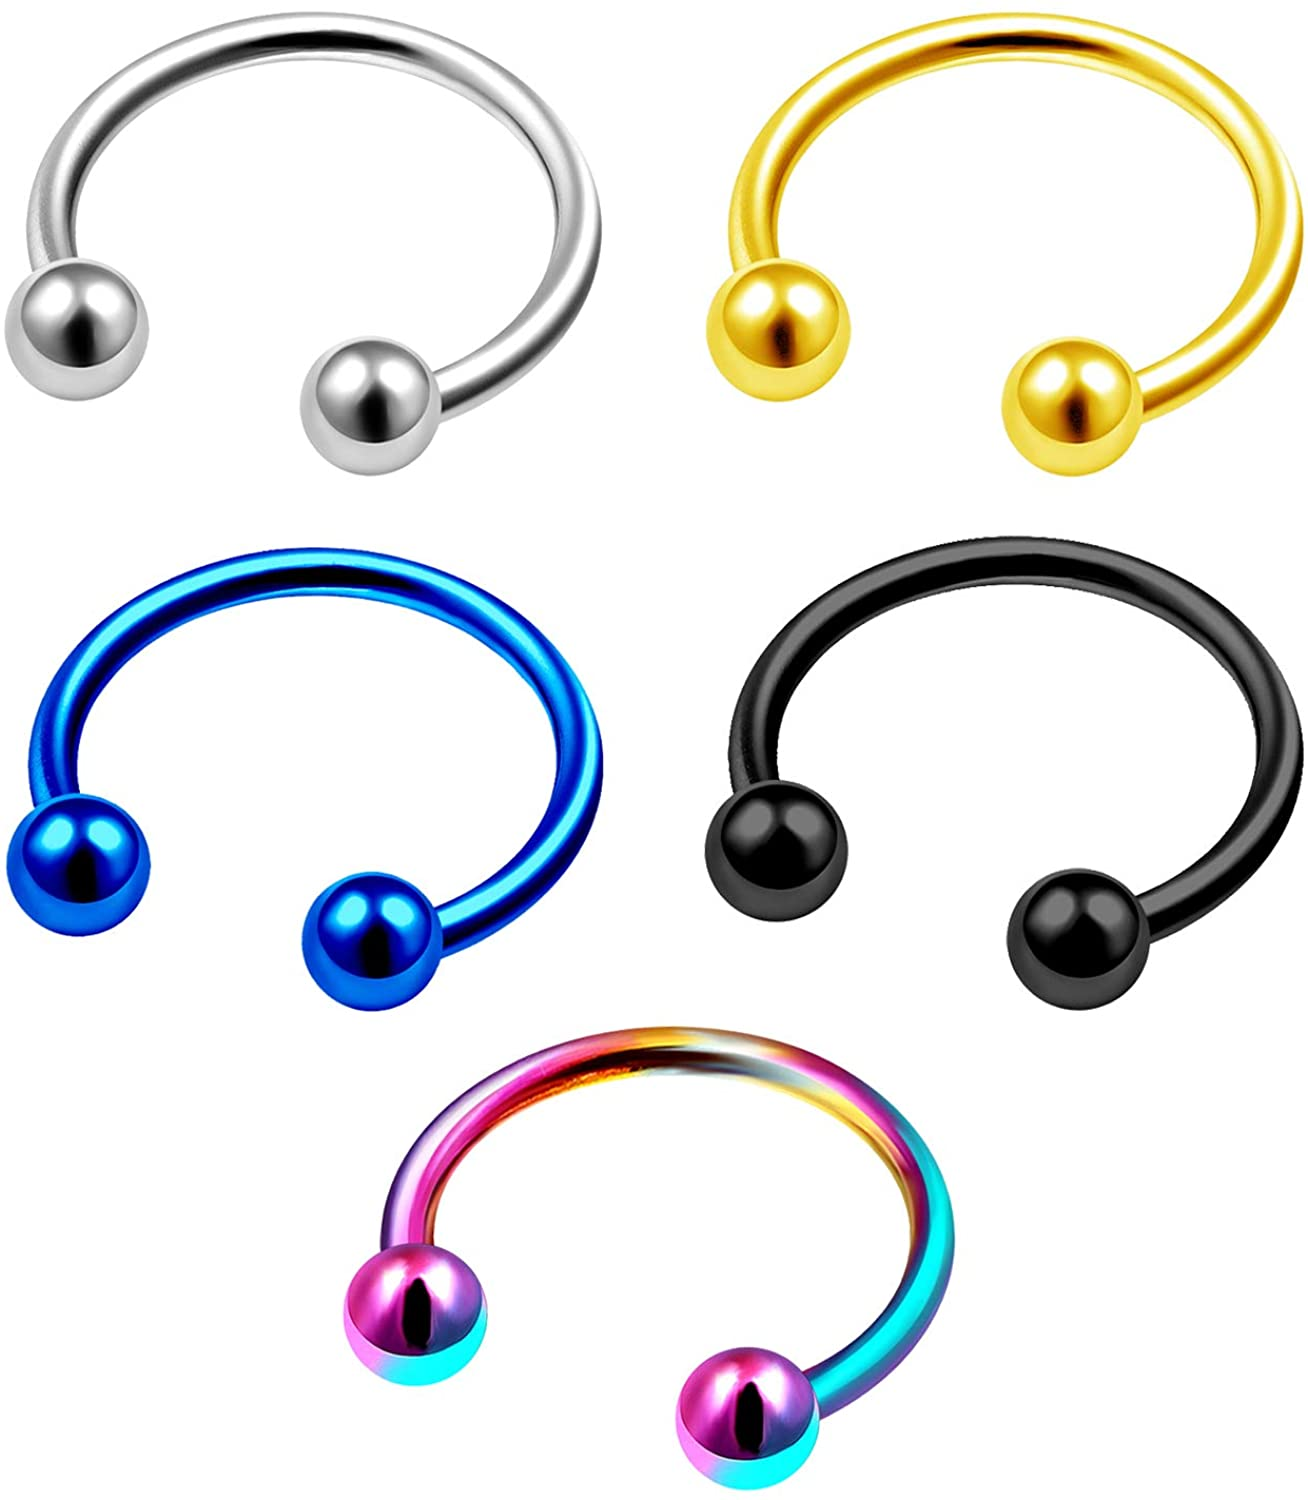 MATIGA 5Pcs Surgical Steel Anodized 18 Gauge Ring Horseshoe Piercing Jewelry Septum Lip Eyebrow Rook Cartilage 3mm Ball More Choices